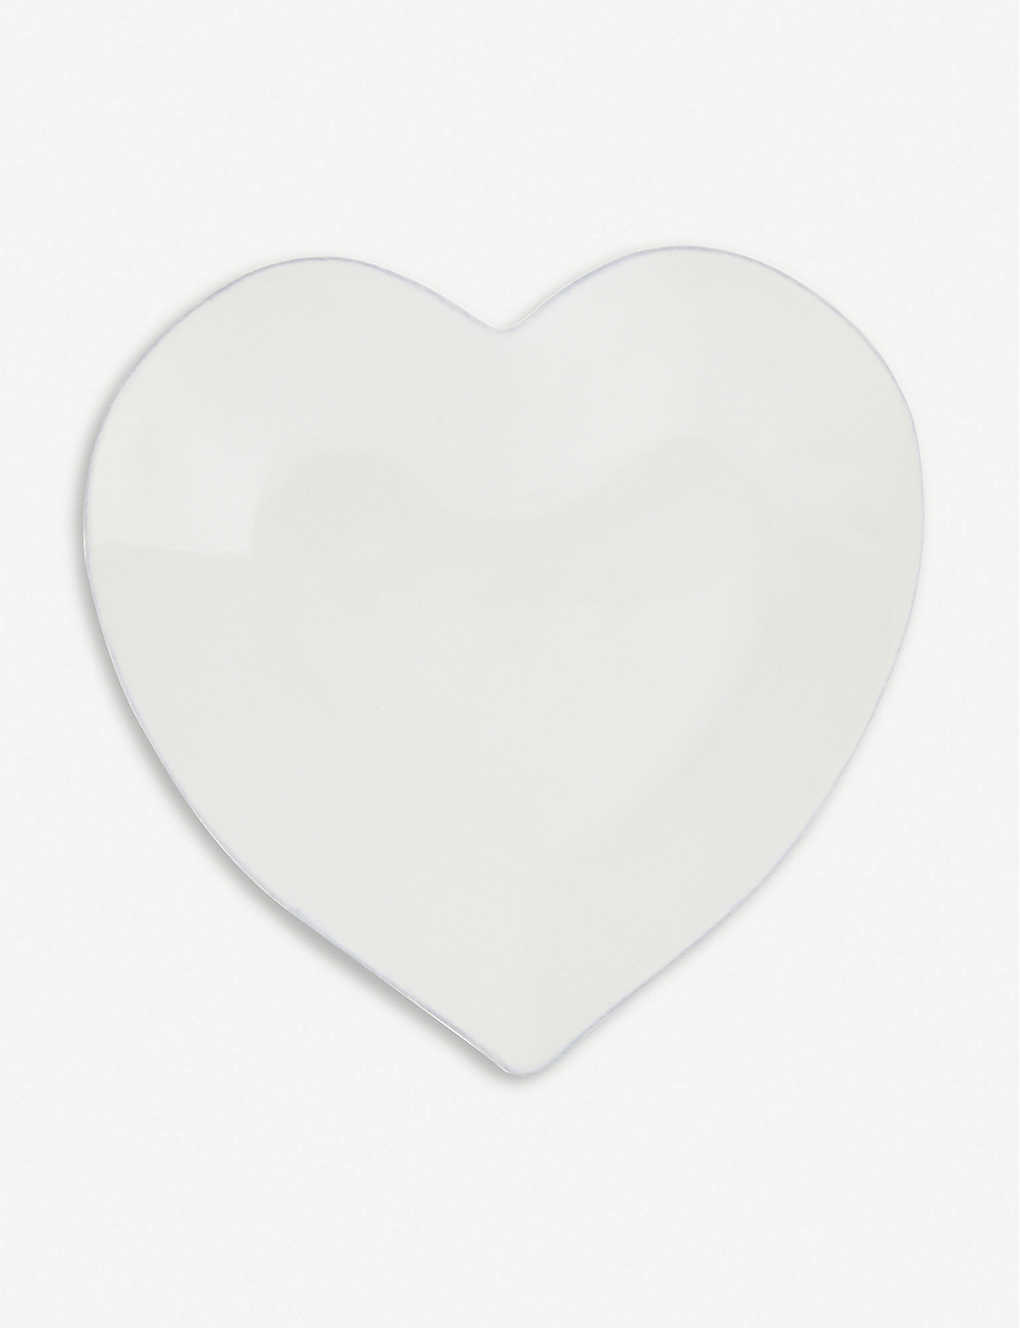 THE WHITE COMPANY: Porto heart-shaped stoneware dinner plate